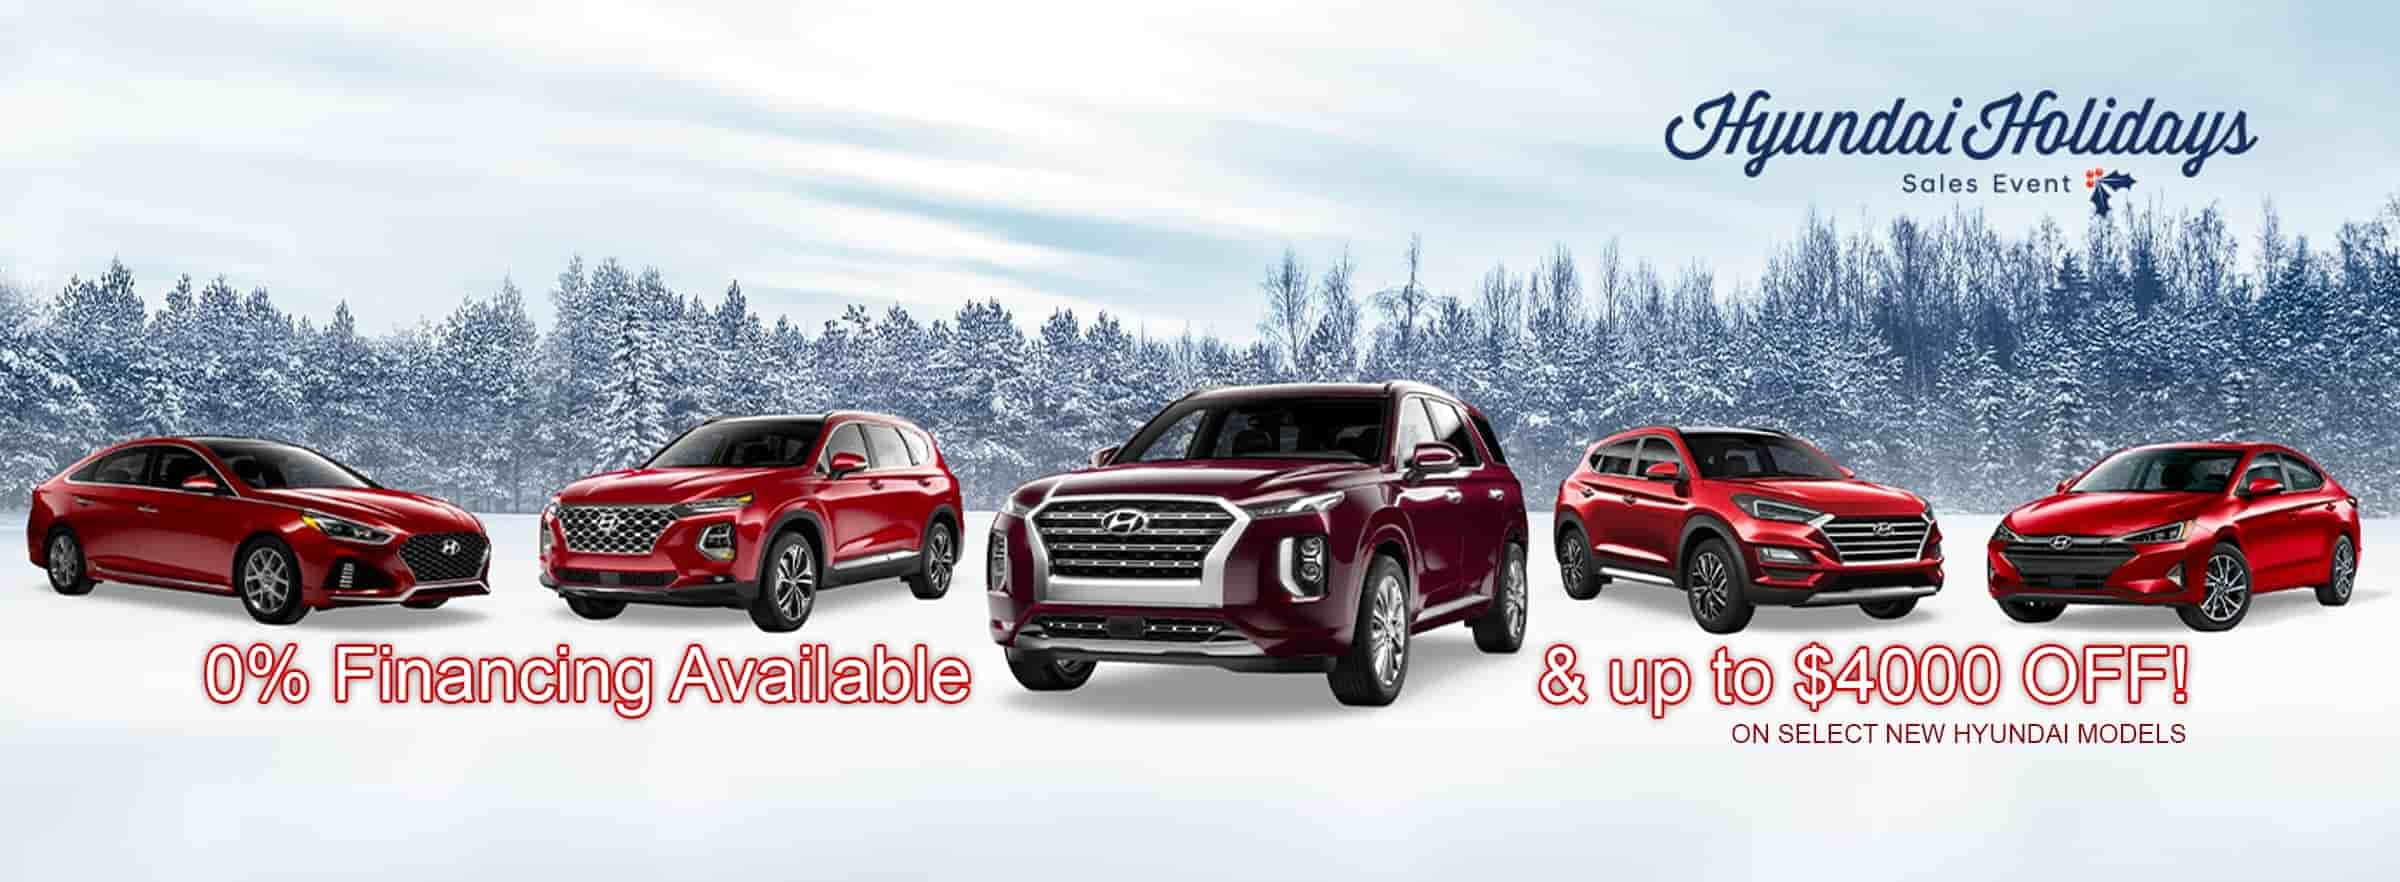 Hyundai Holidays Sales Event is here at Boulder Hyundai in Boulder CO